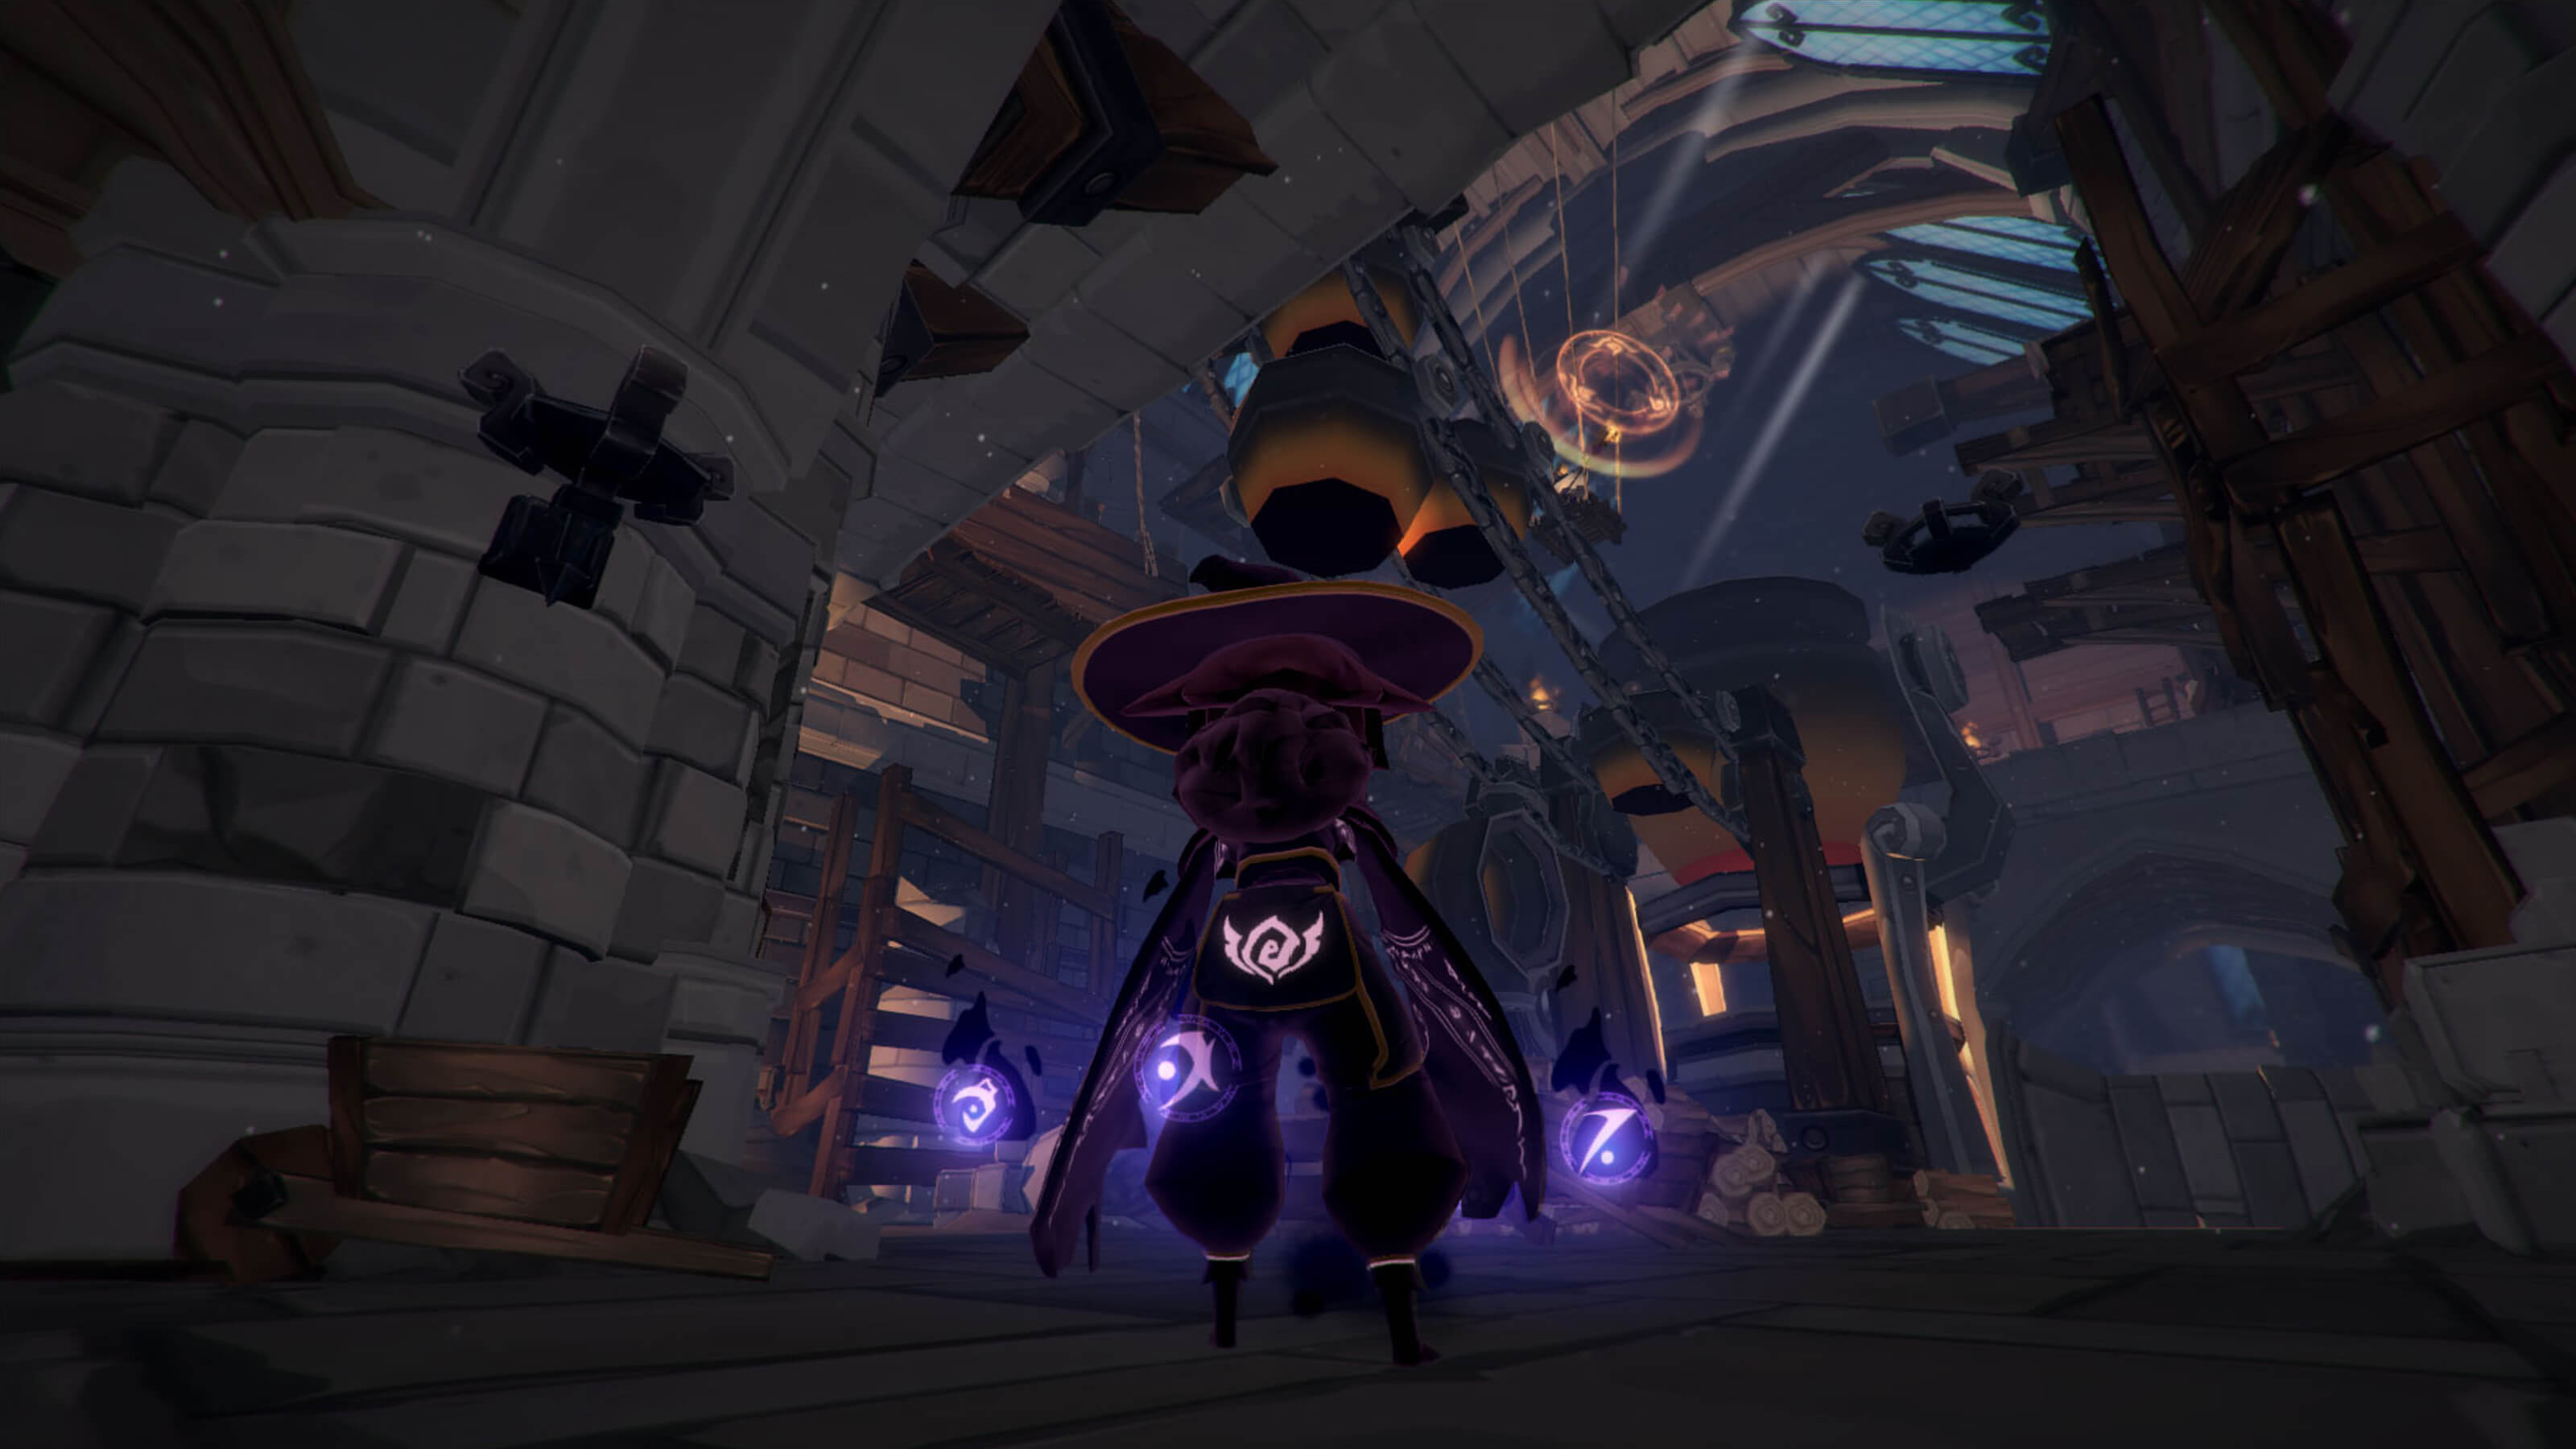 A view of the player's character in third person from behind as she stands in a large stone-and-wood structure